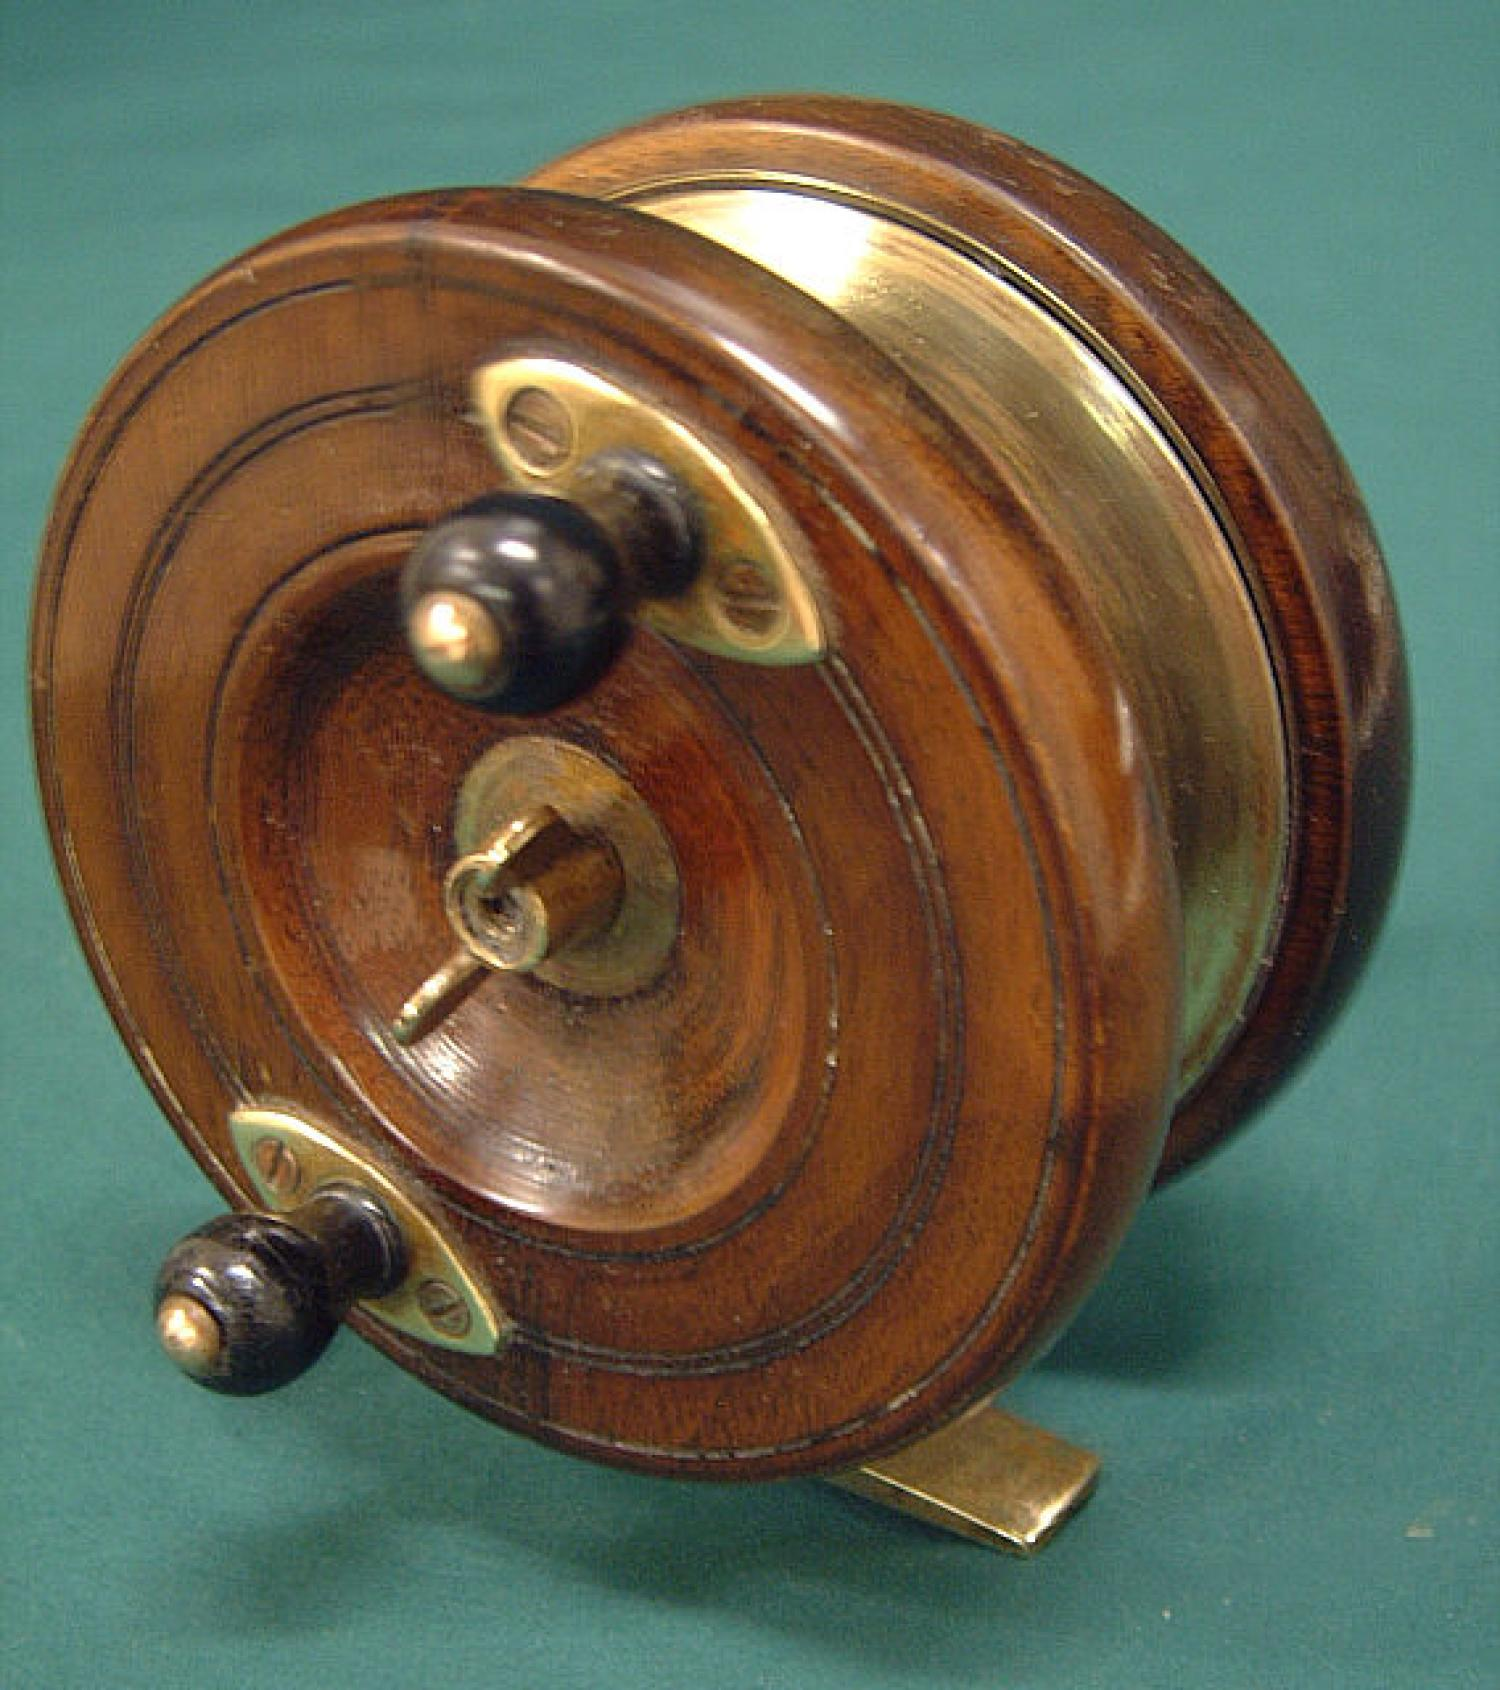 Antique wood and brass fishing reel c1880 for Antique fishing reels